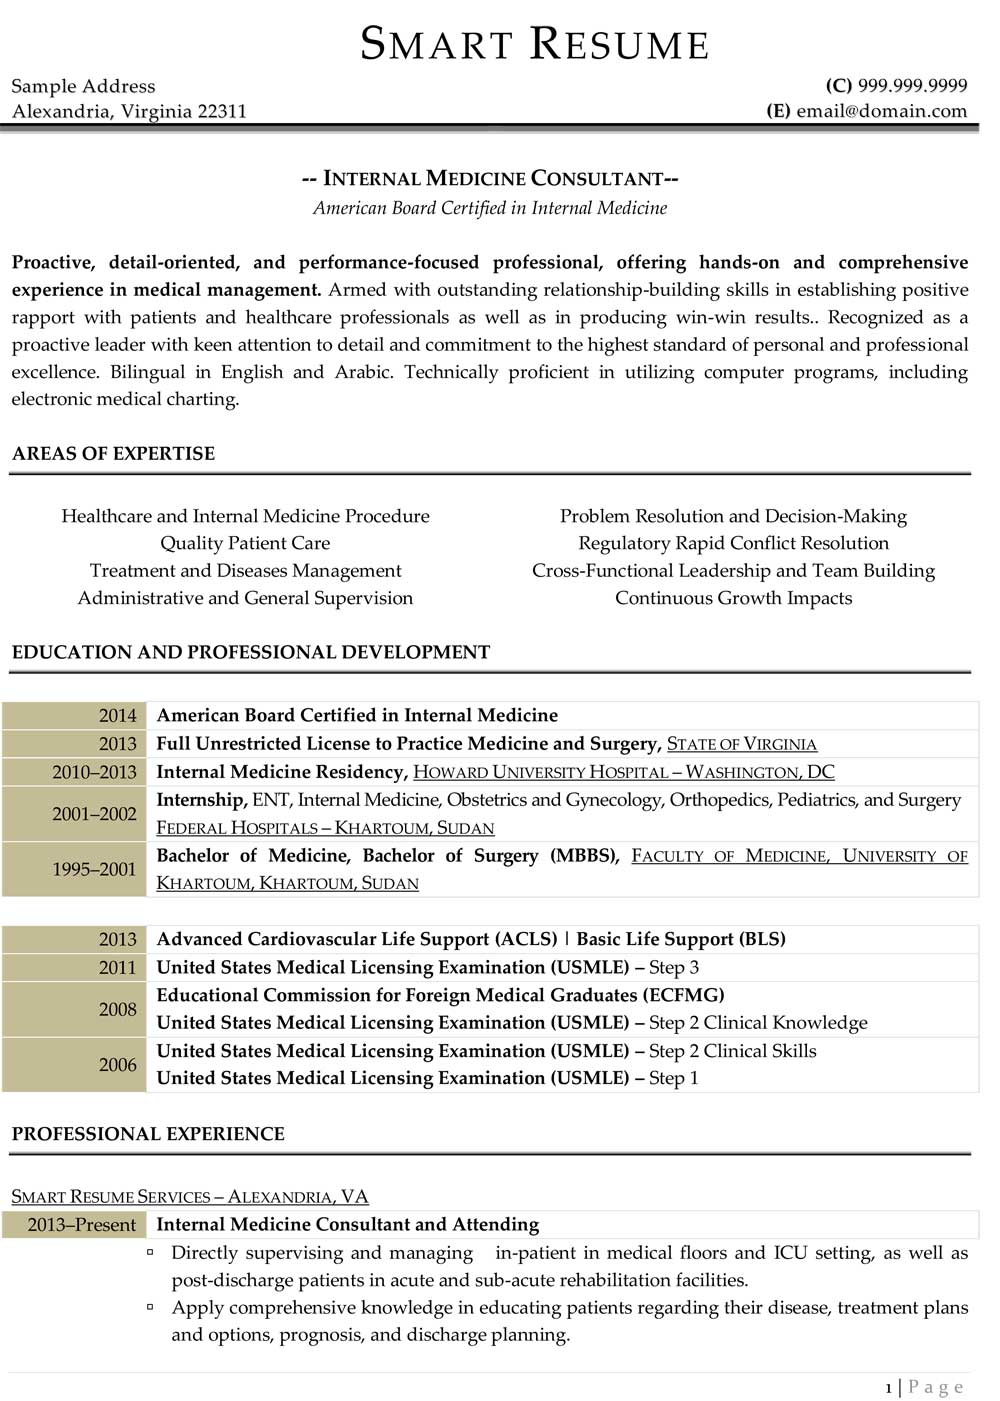 green mile comparison essay free cv cover letter cover letter for a